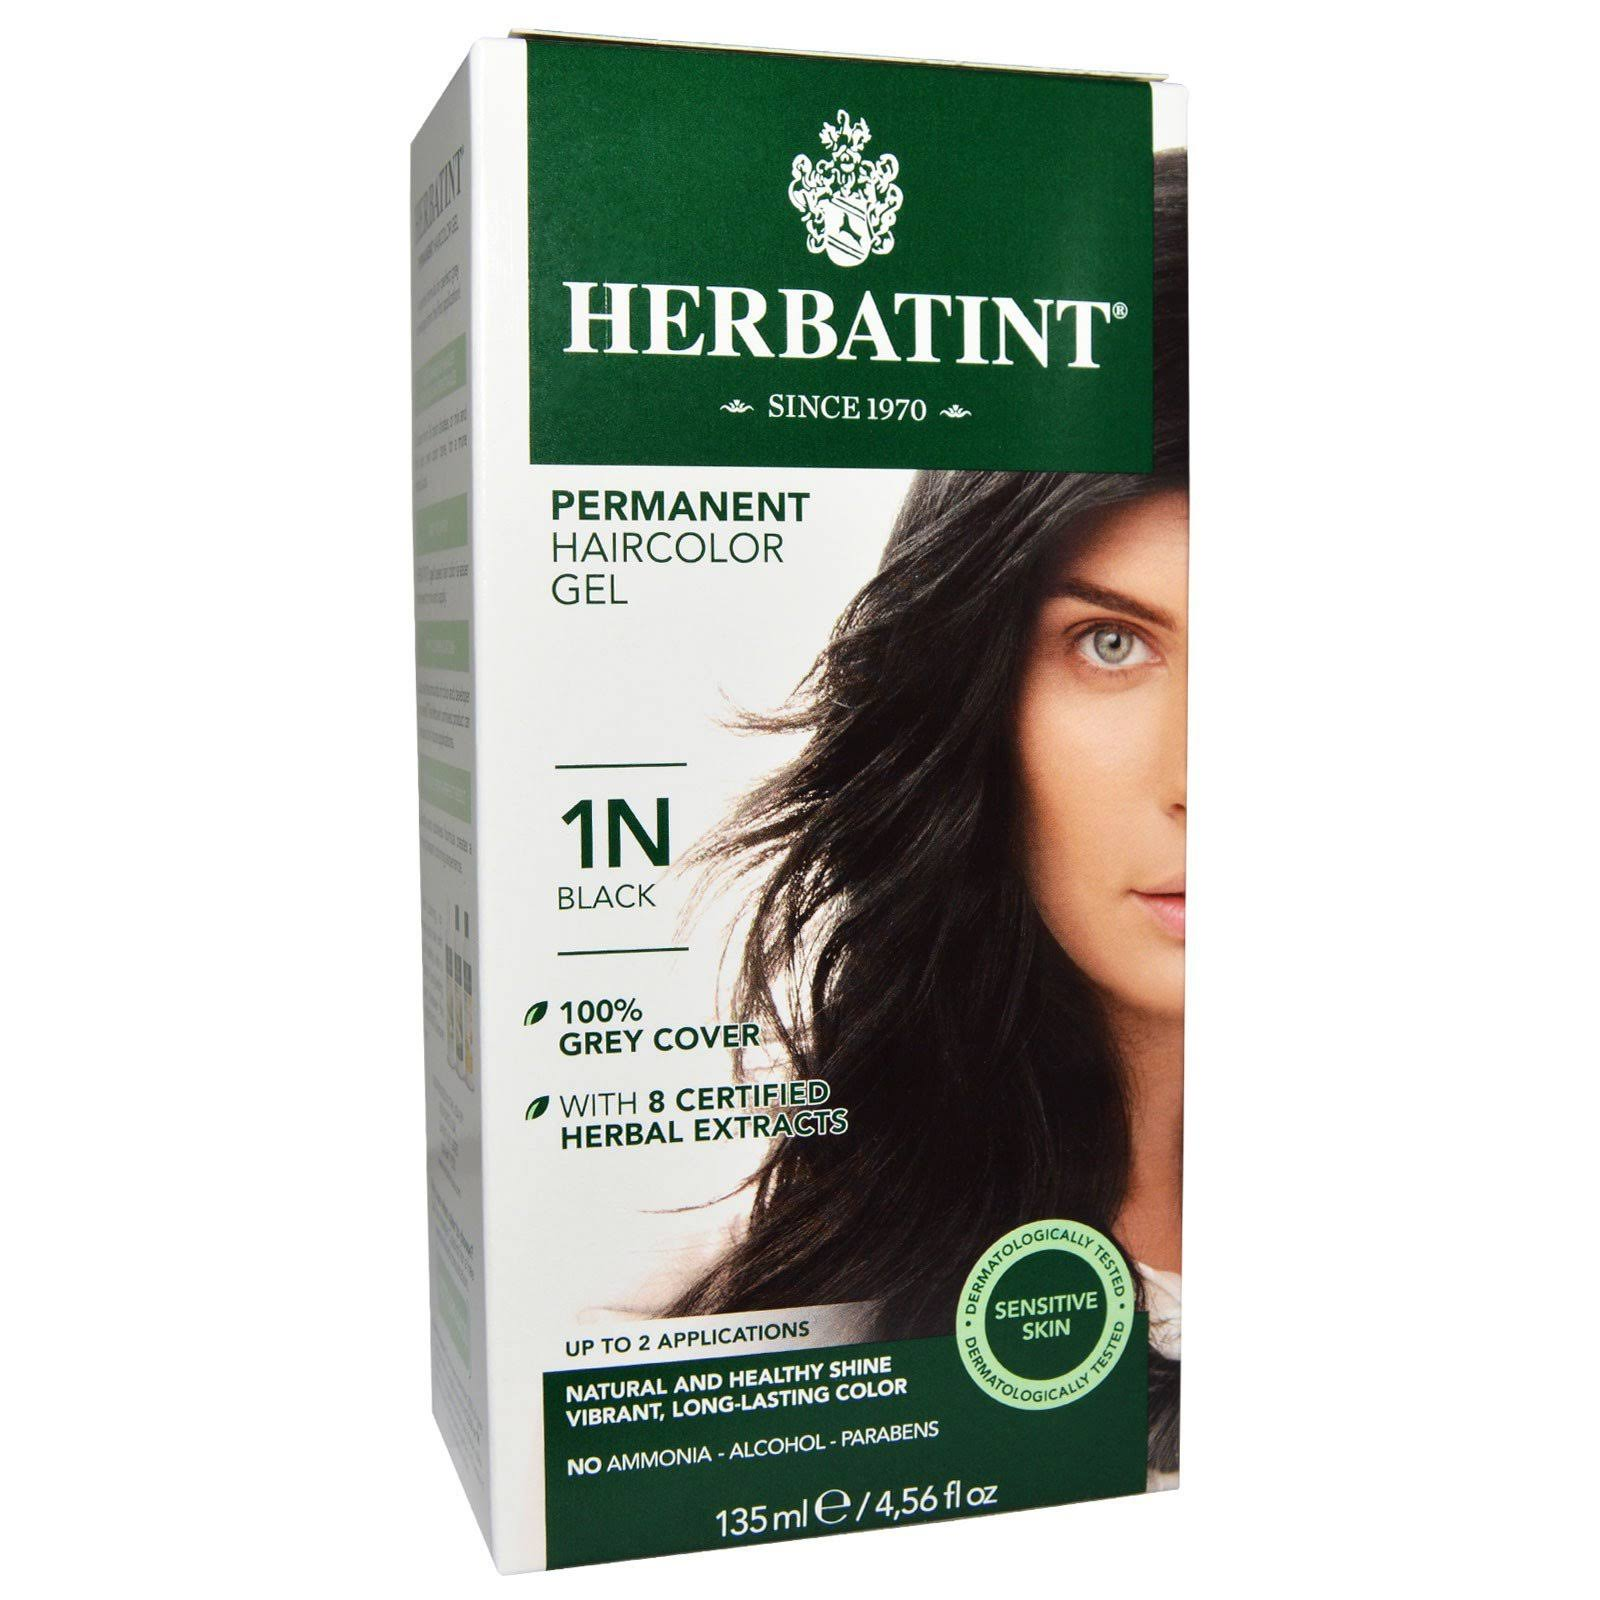 Herbatint Permanent Herbal Hair Color Gel - Black, 1N